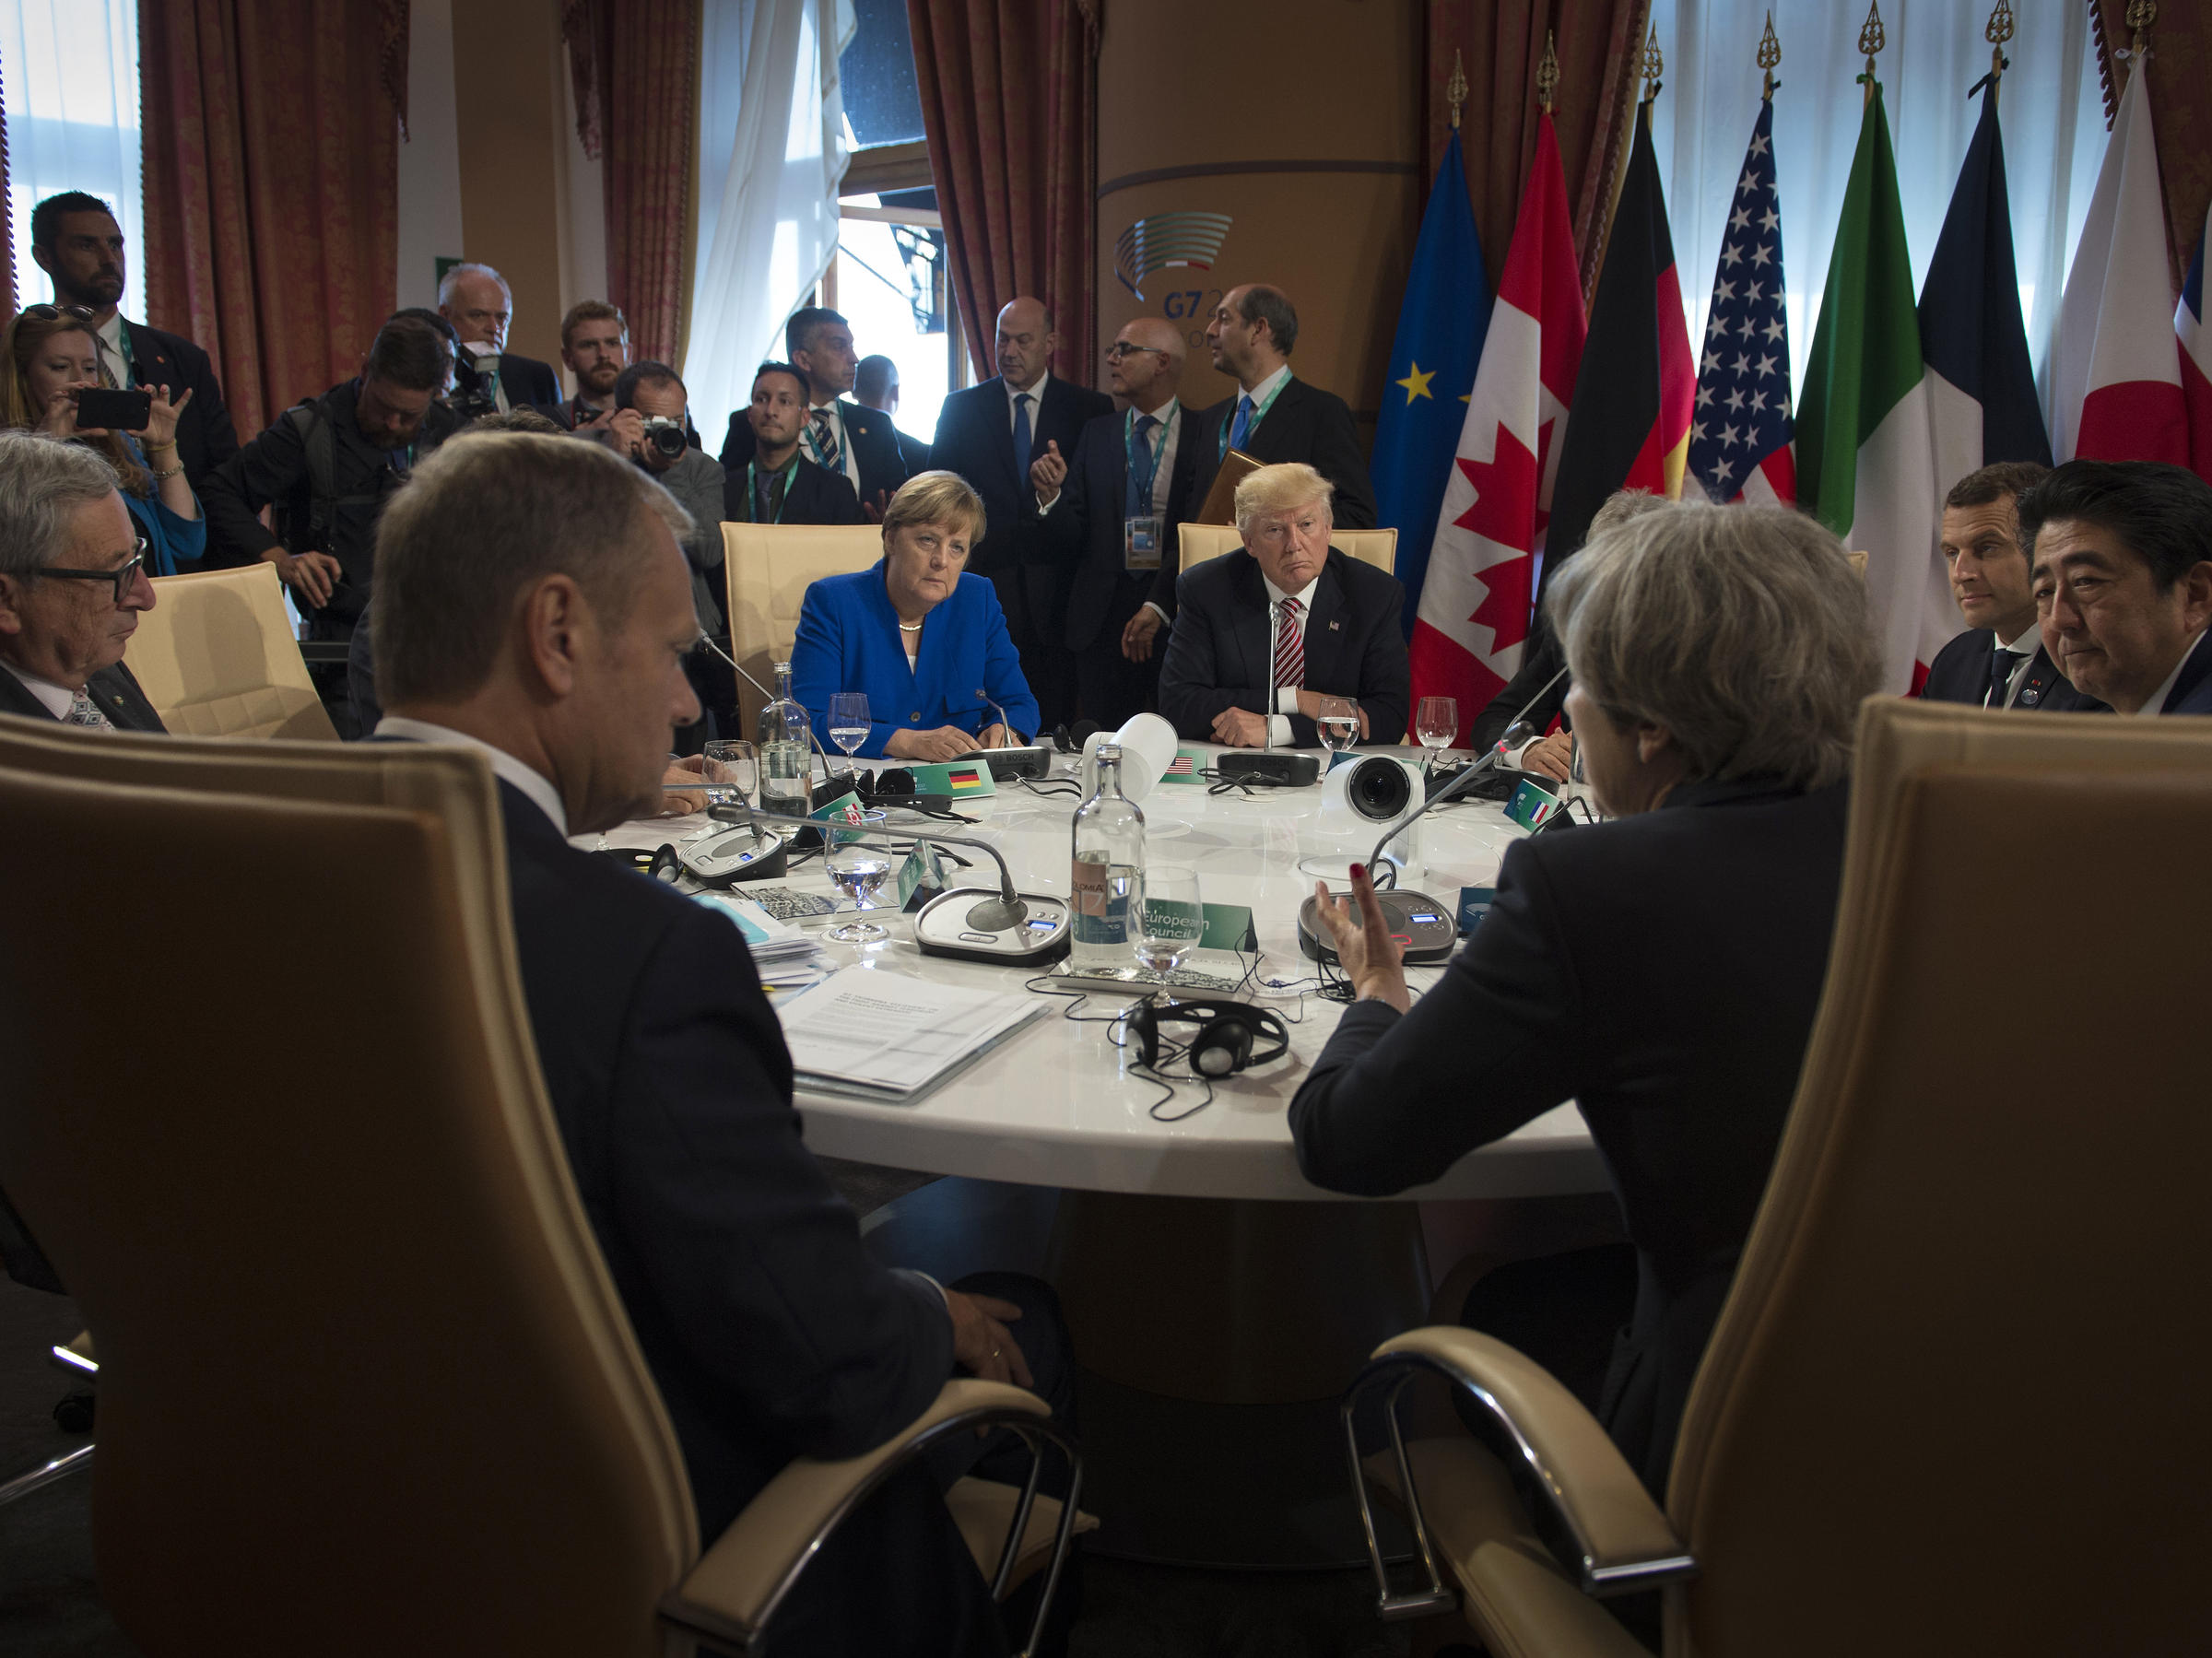 G7 leaders sign Declaration on fight against terrorism